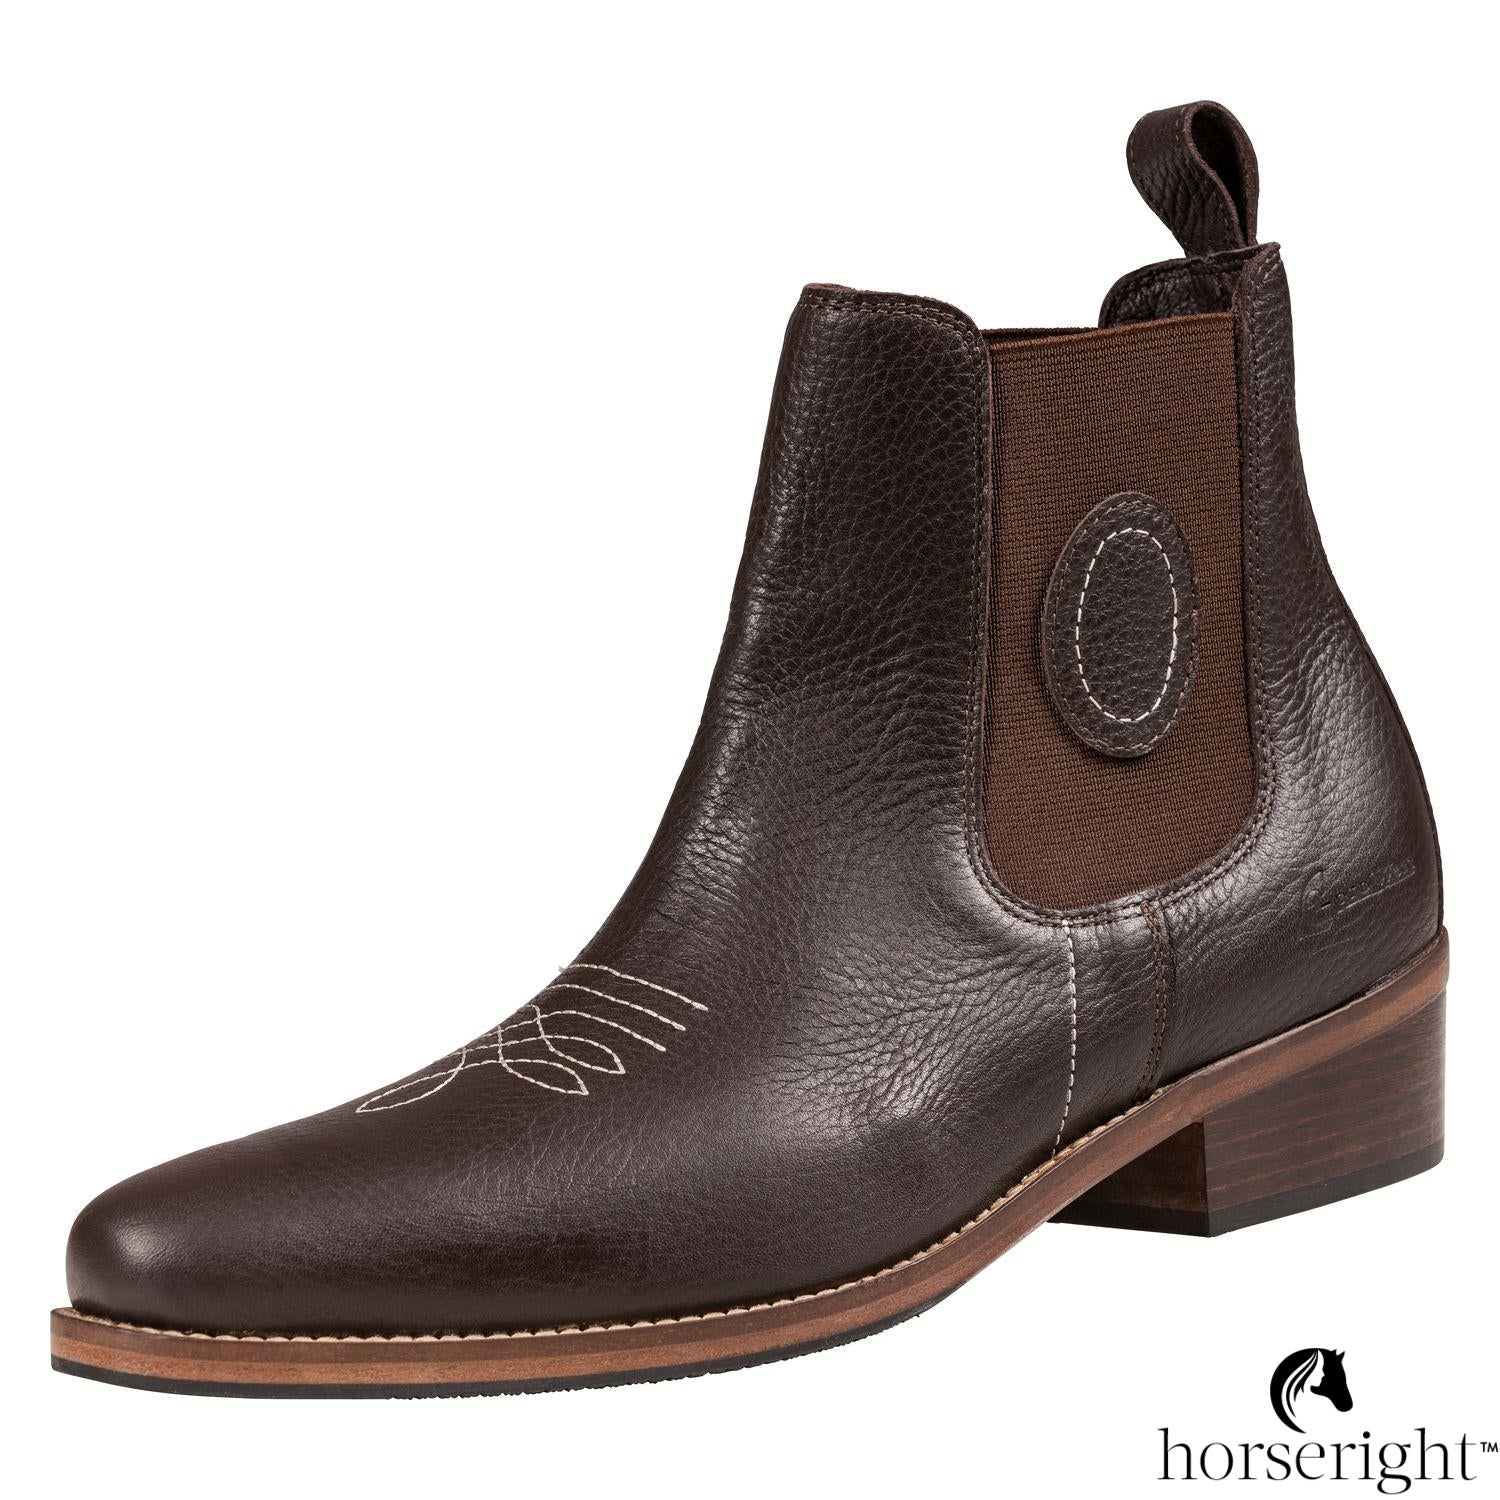 L-Pro Andes West Western Andes Ankle Boots